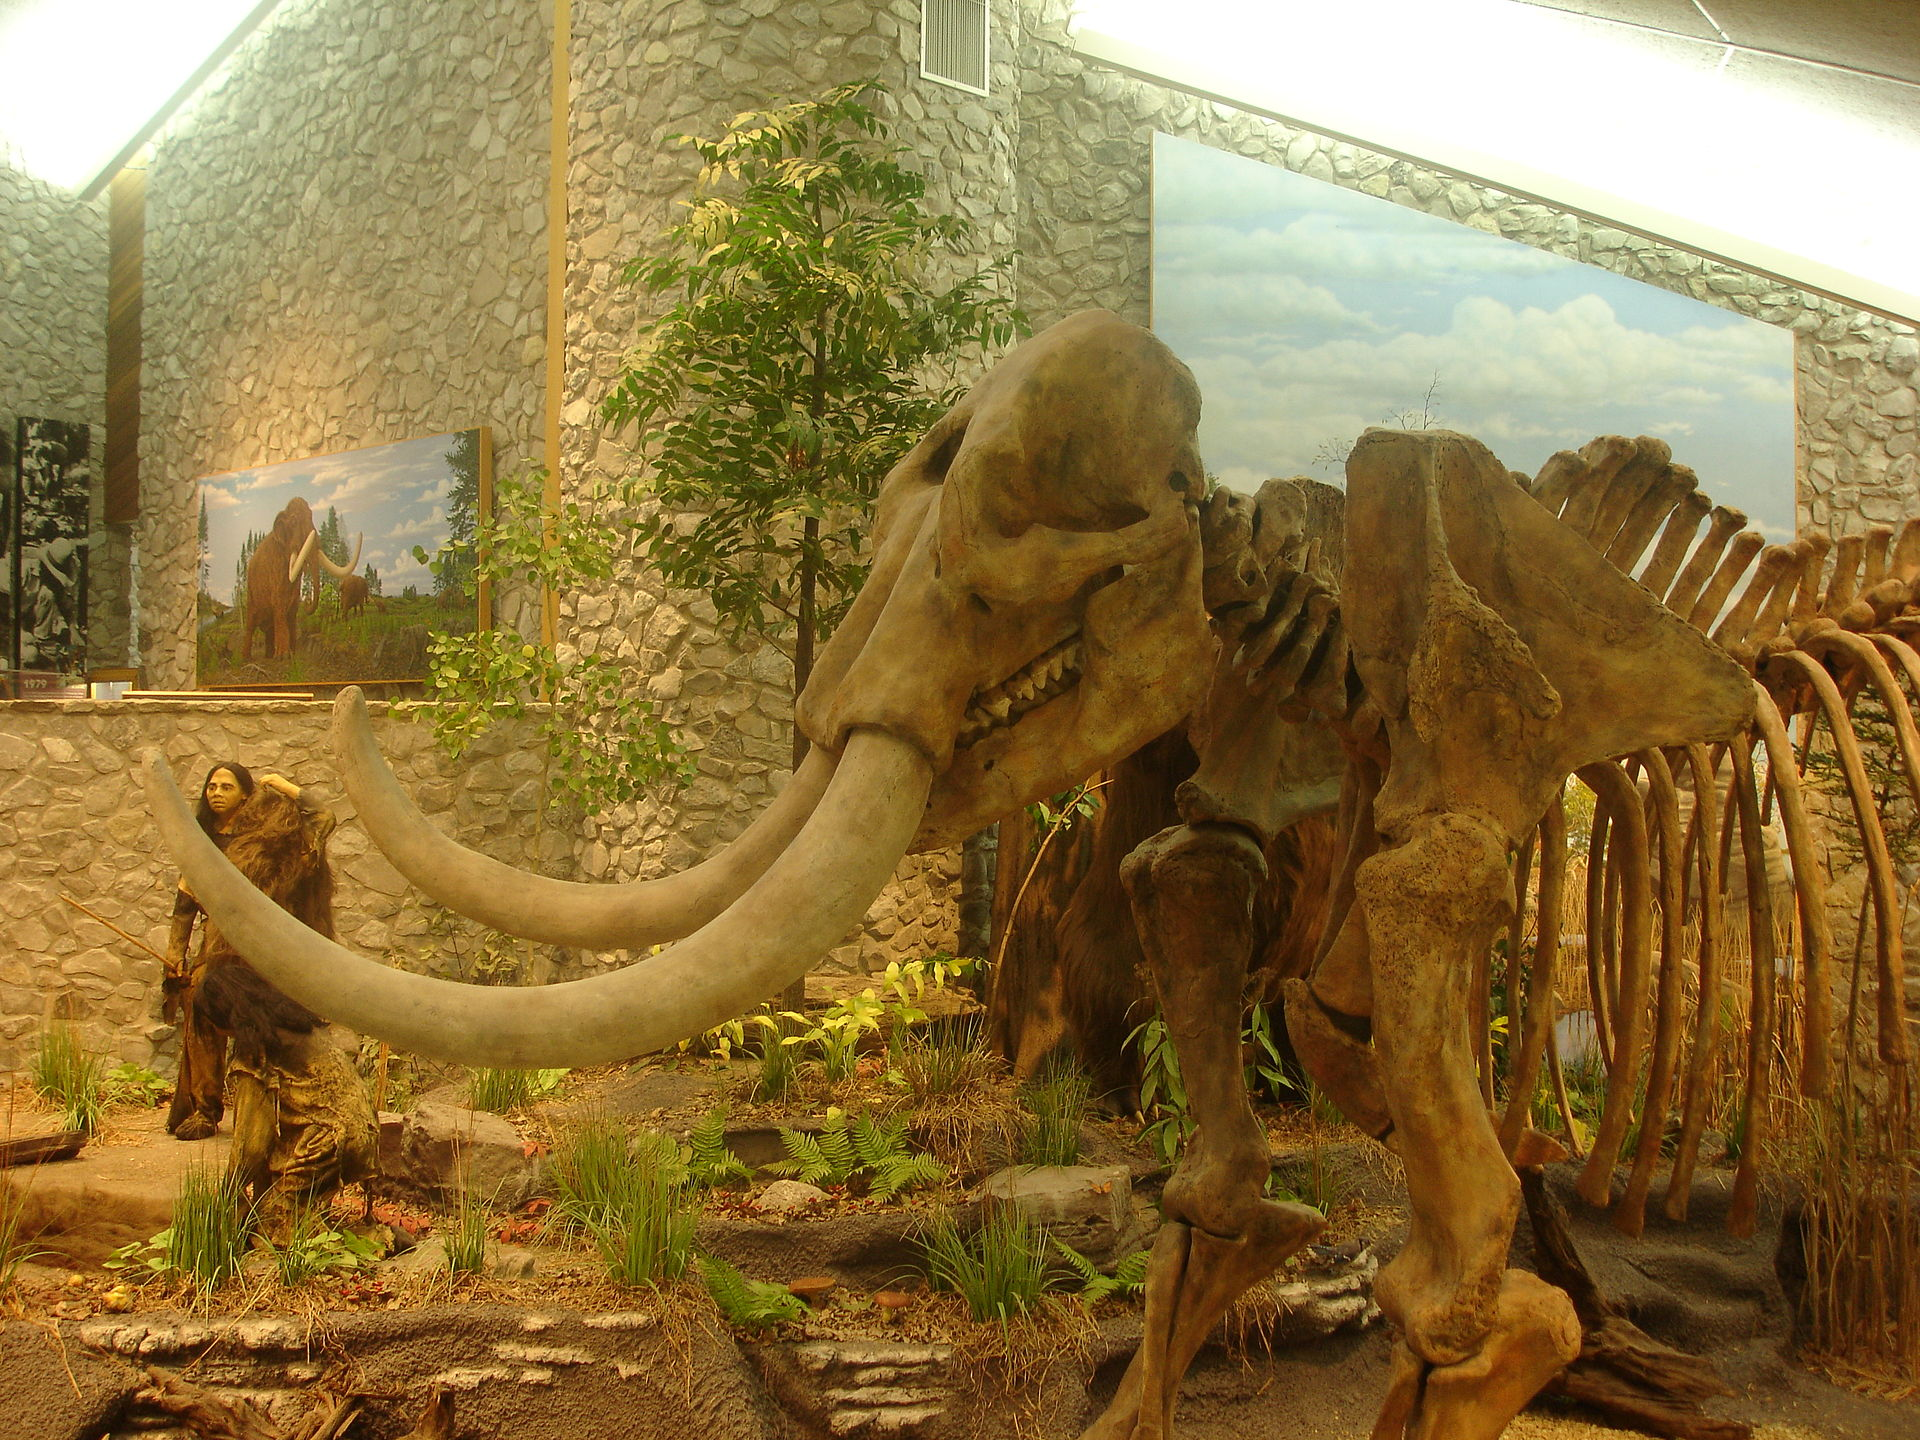 The museum features this mastodon skeleton as well as many other artifacts and fossils on display.